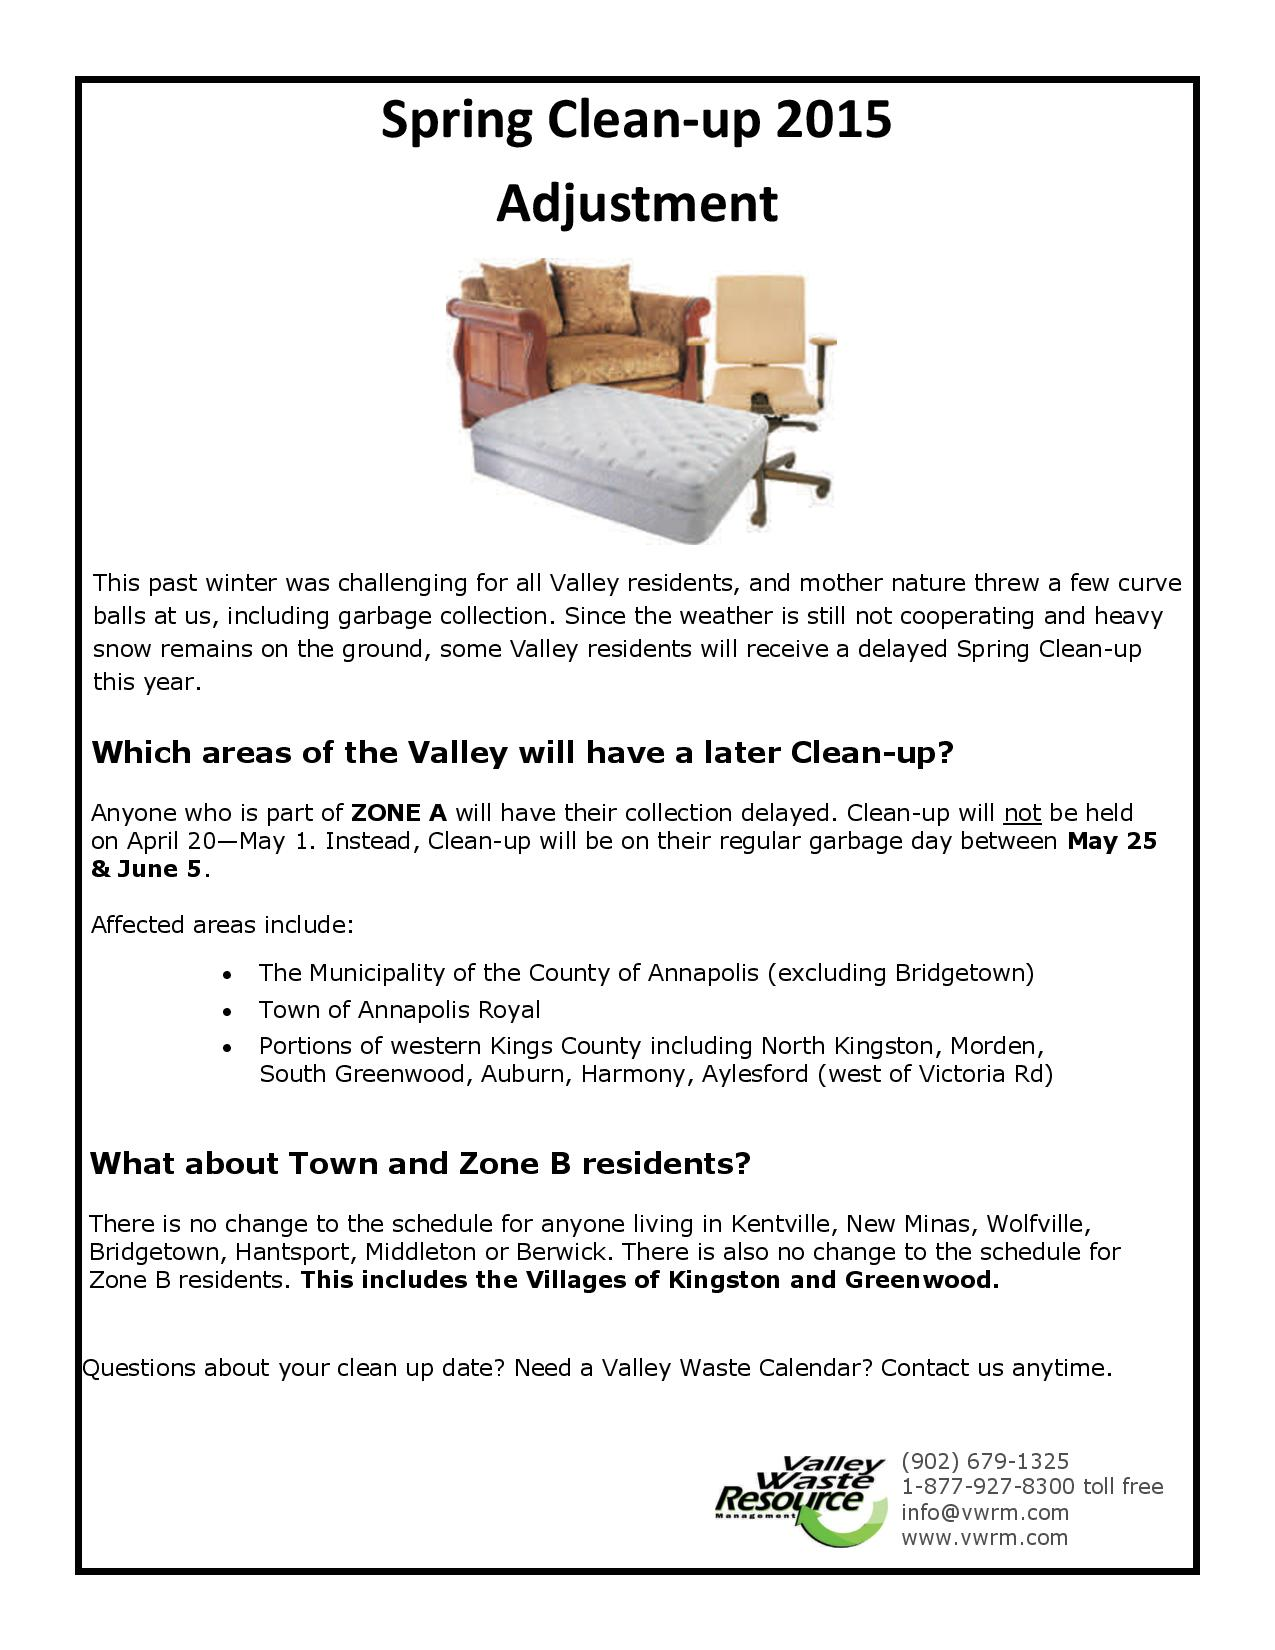 Clean up adjustment flyer 2015 page 001